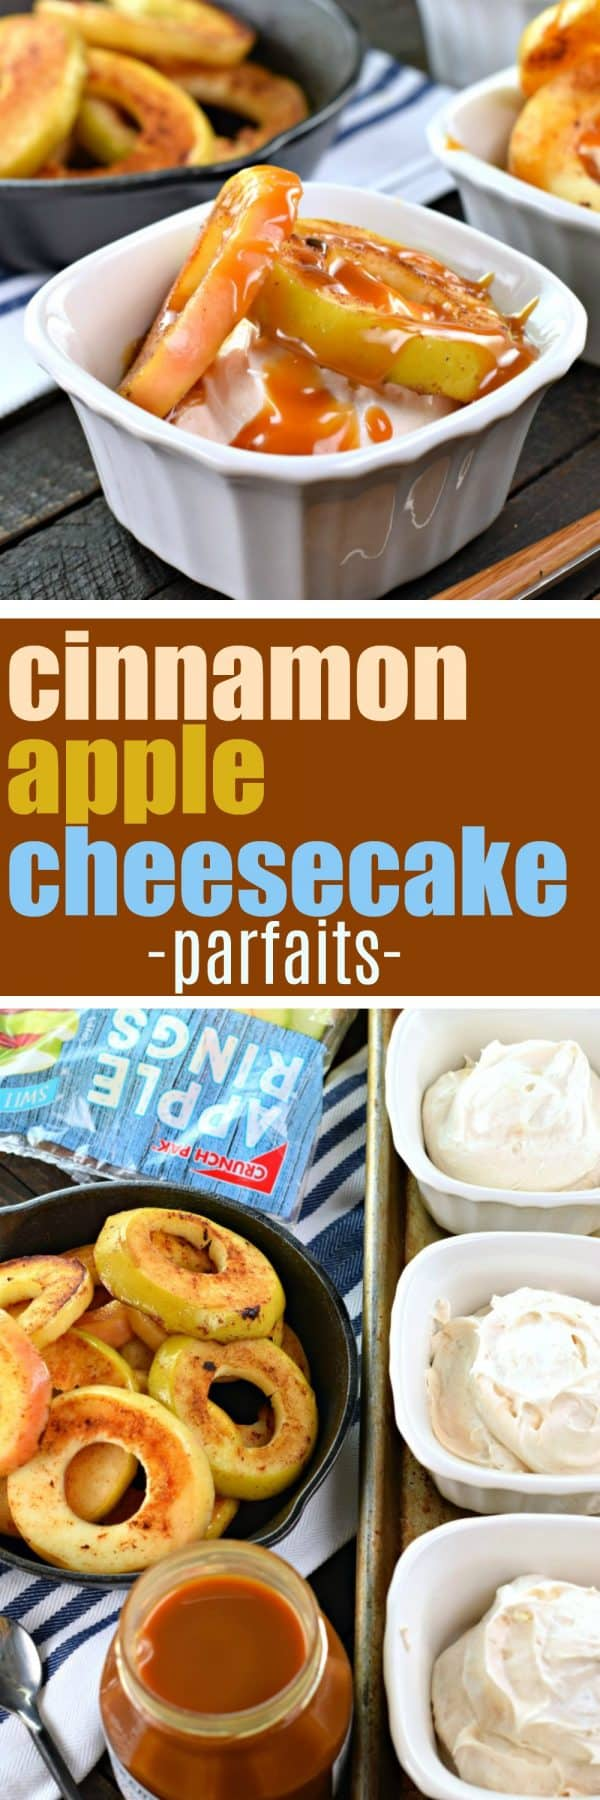 Cinnamon Apple Cheesecake Parfaits #nobake #dessert #cheesecake #apples #sponsored #crunchpak